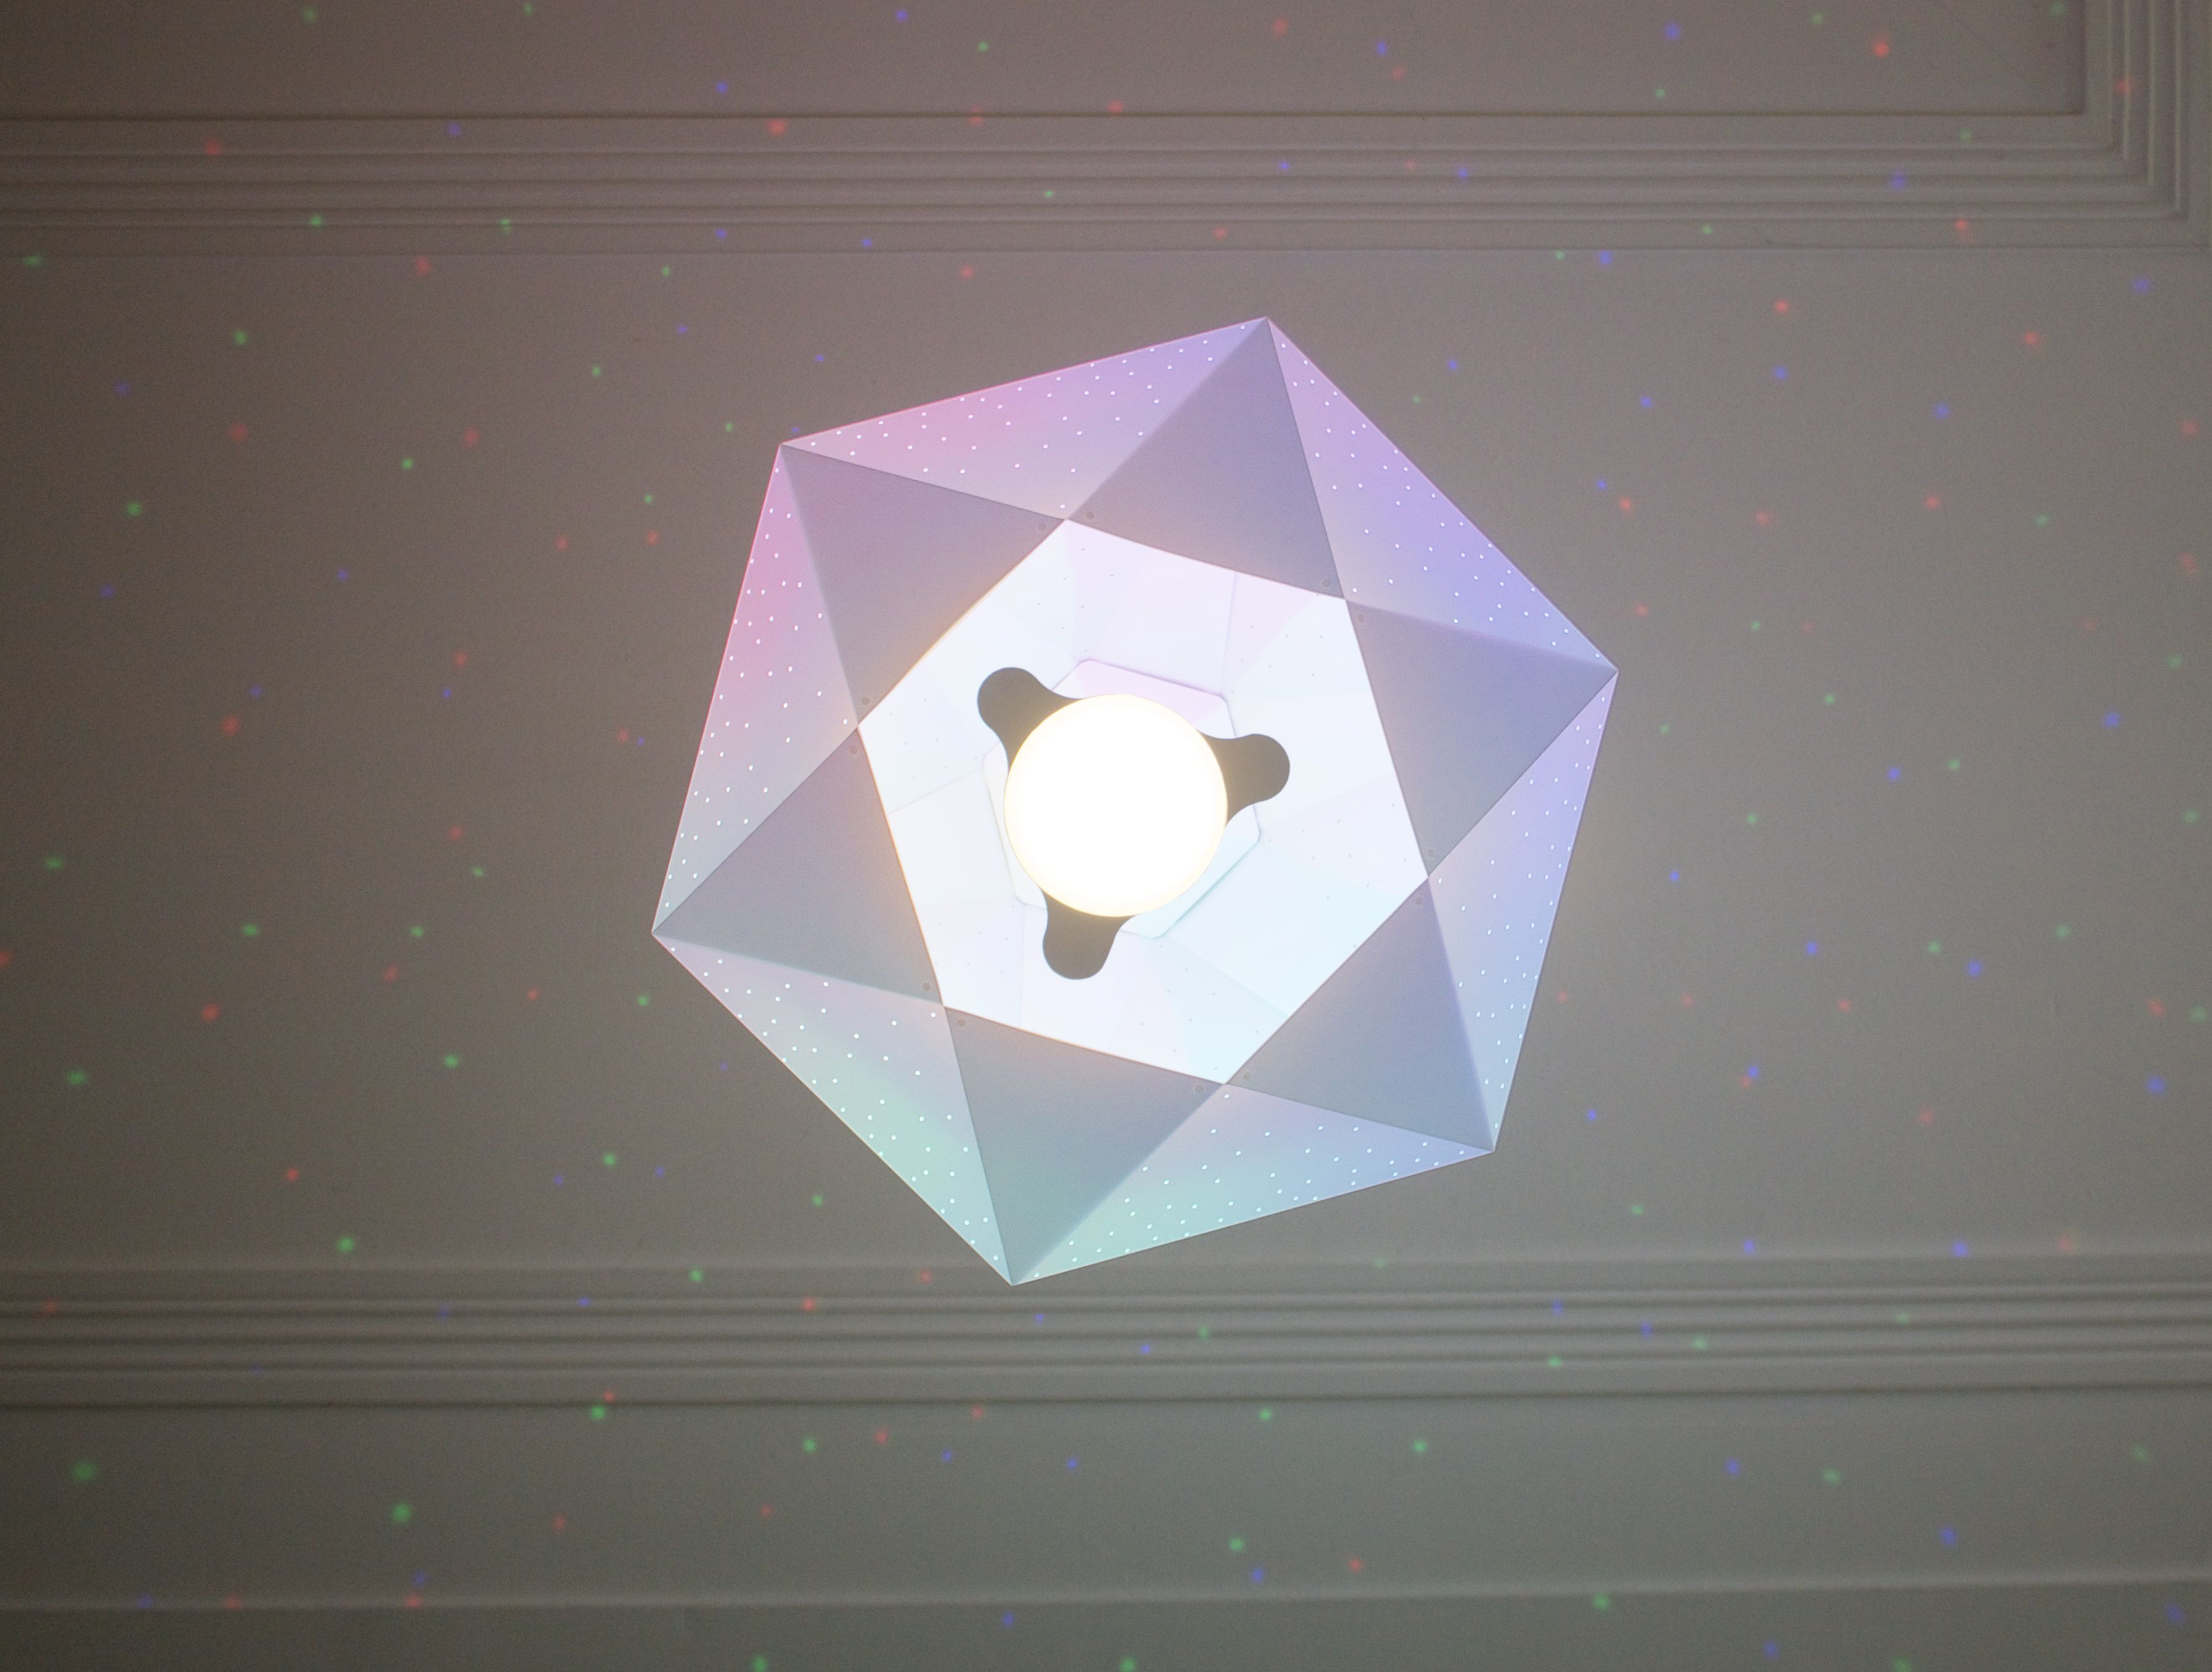 CMYK Diamond - The faceted Diamond shade is made of matte white polypropylene covered in tiny pin-pricks to scatter coluored dots of light onto surrounding surfaces. The light sparkles through the little holes like a real diamond.